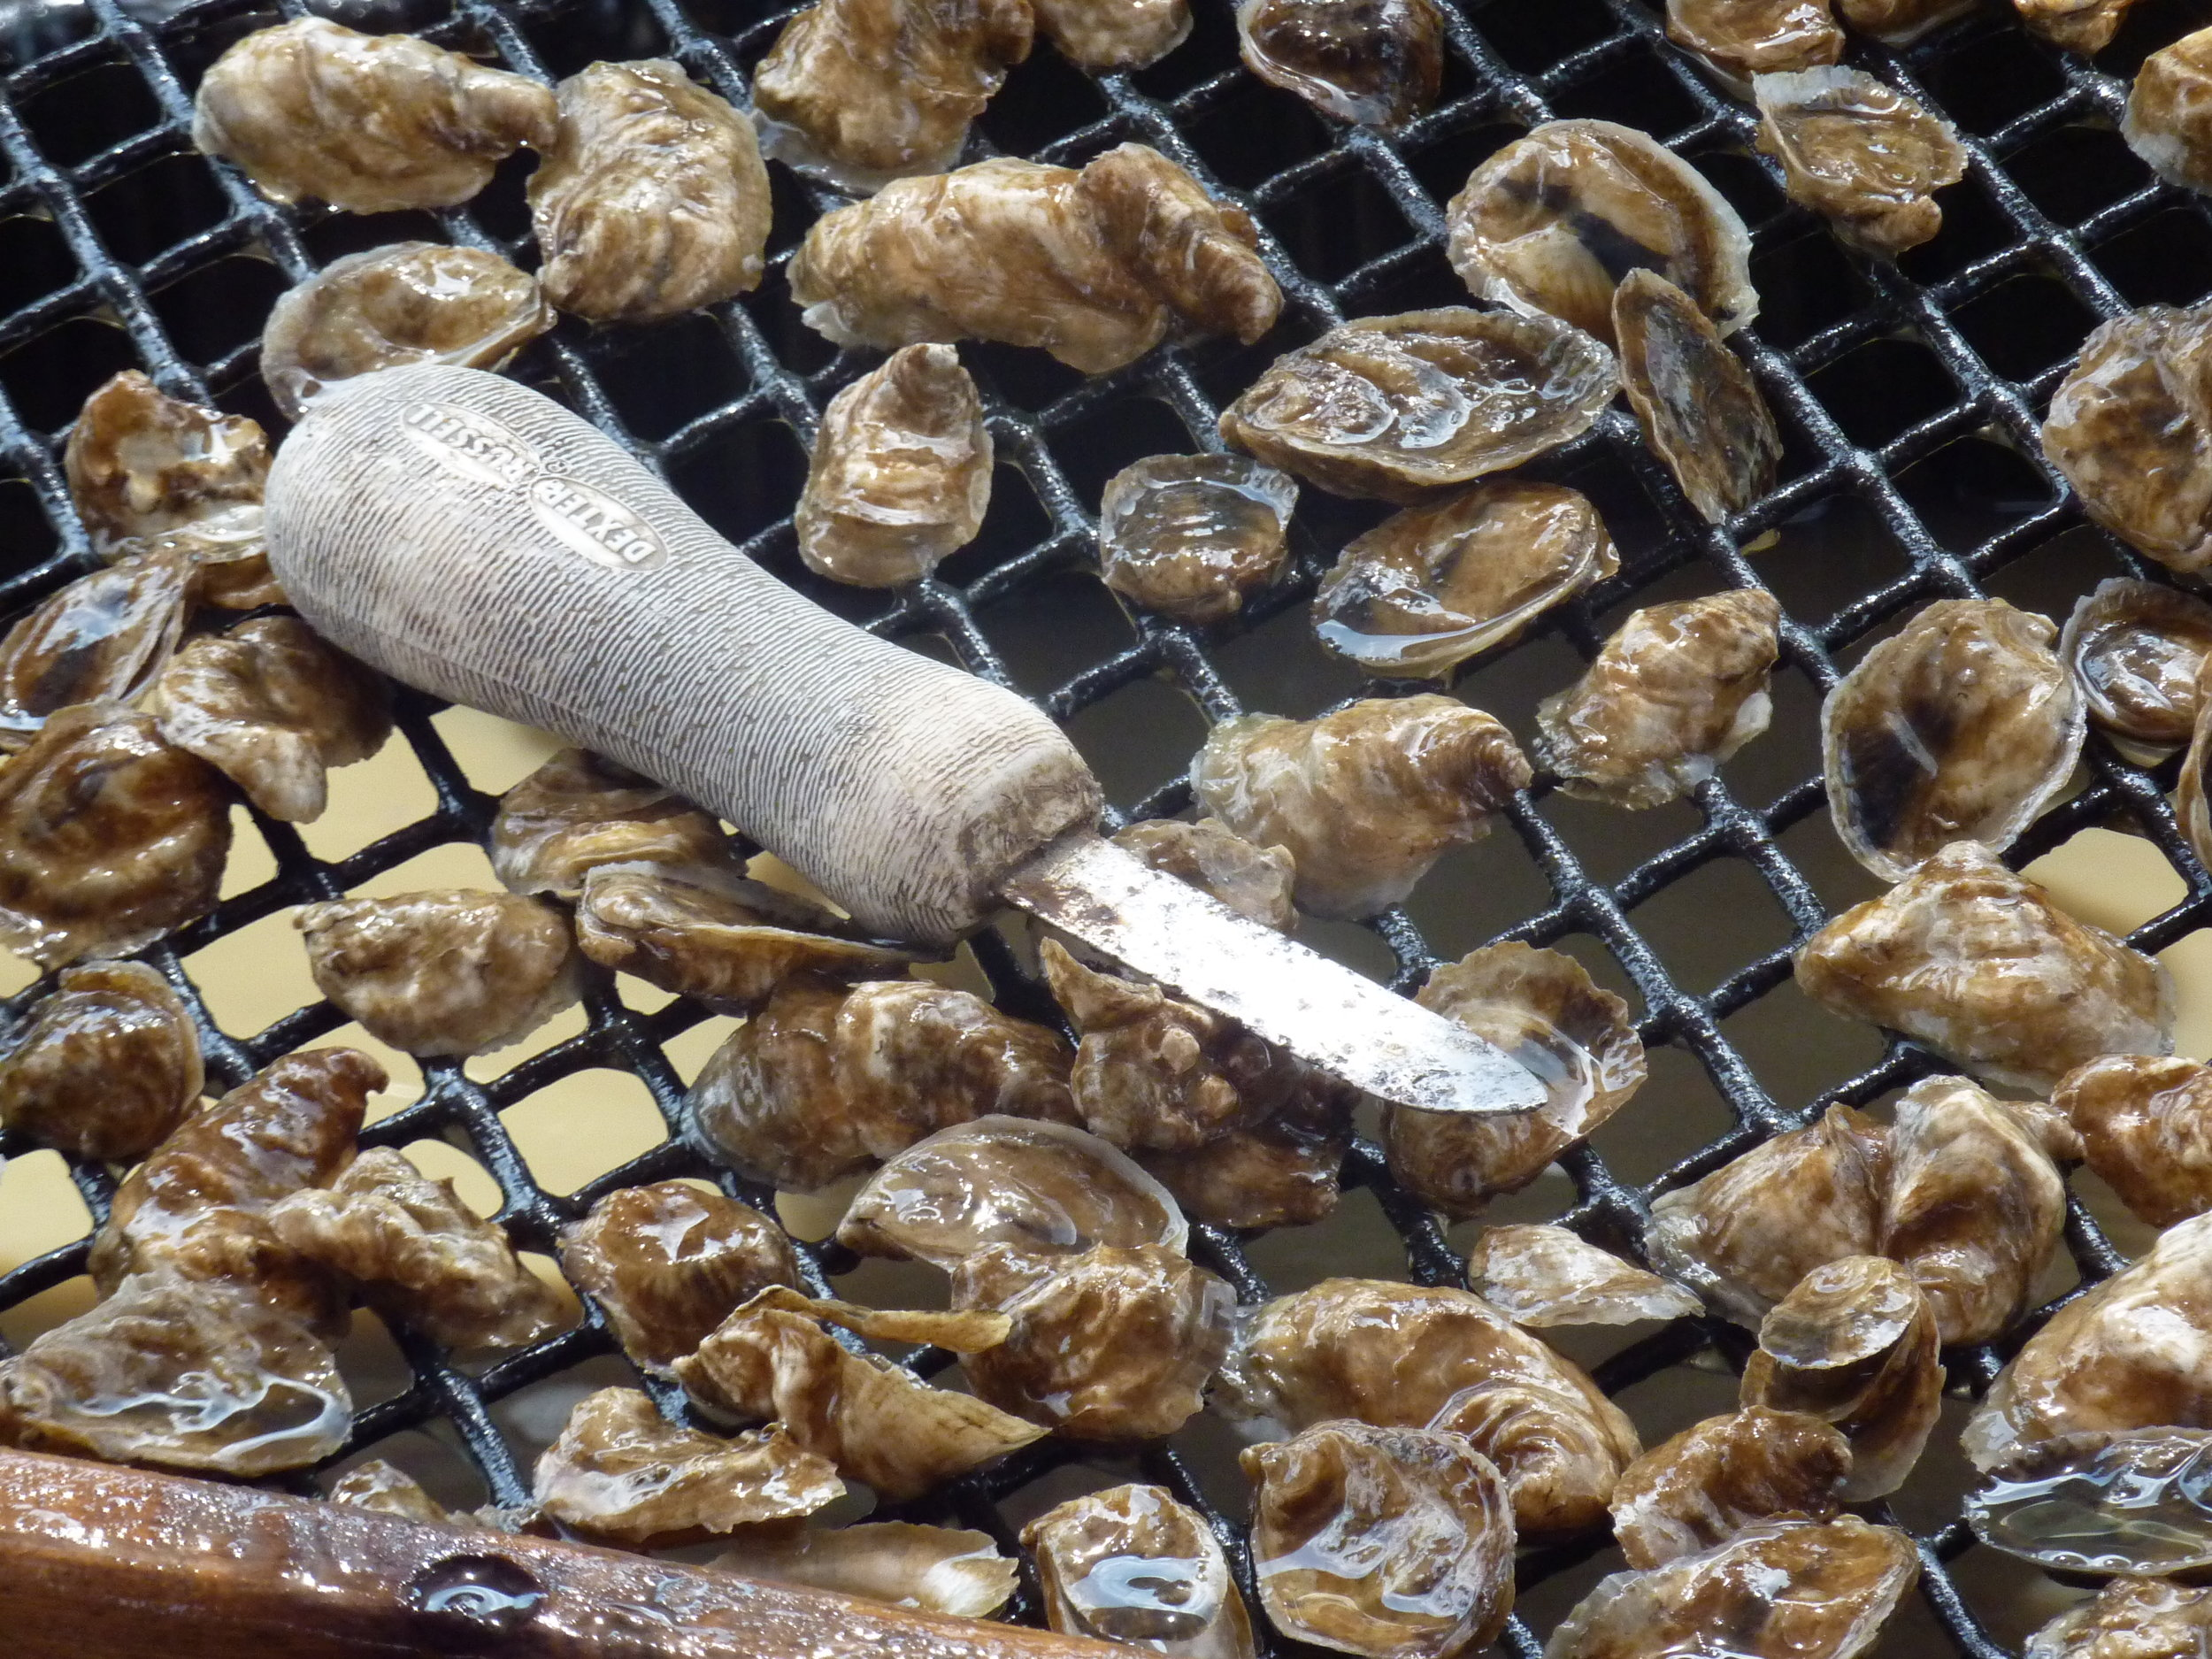 Sifting oysters by size. Oyster mariculture is a rapidly growing activity in North Carolina, but with its growth come new social and ecological interactions in coastal waters. Here small oysters are sifted so they can be separated into differently-sized mesh bags for grow-out on a local shellfish farm. (Photo: L. Fairbanks)